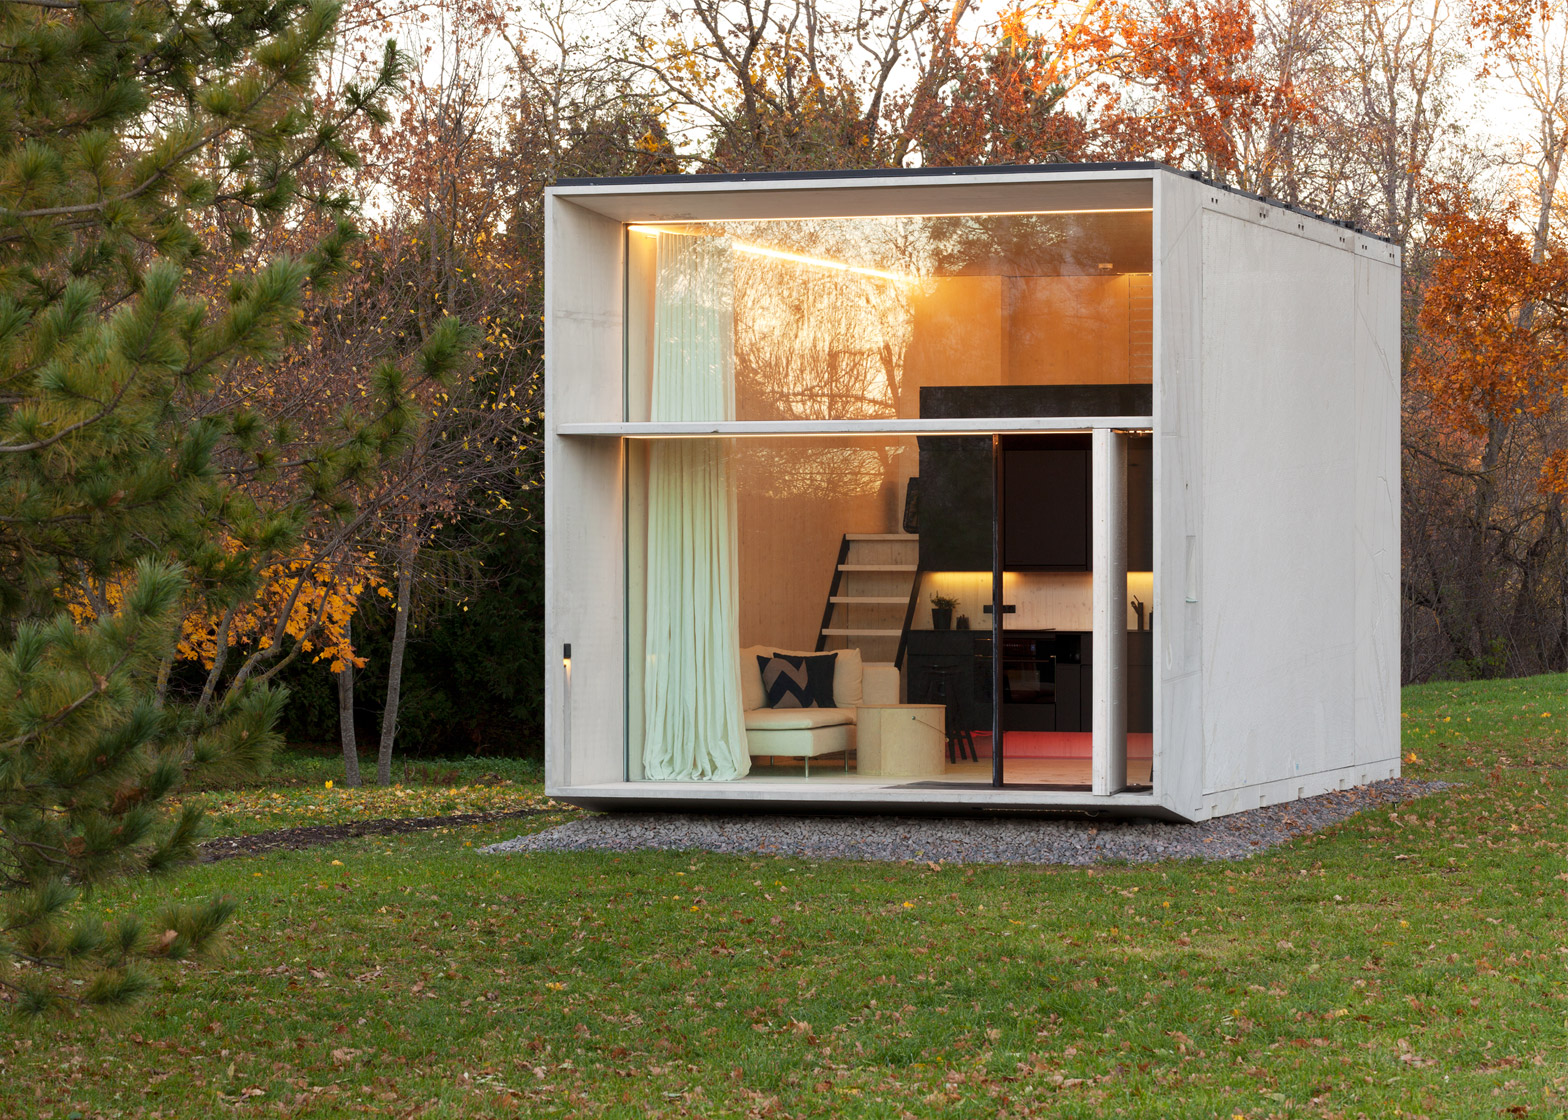 Shedworking koda moveable pop up concrete garden offices for The garden office